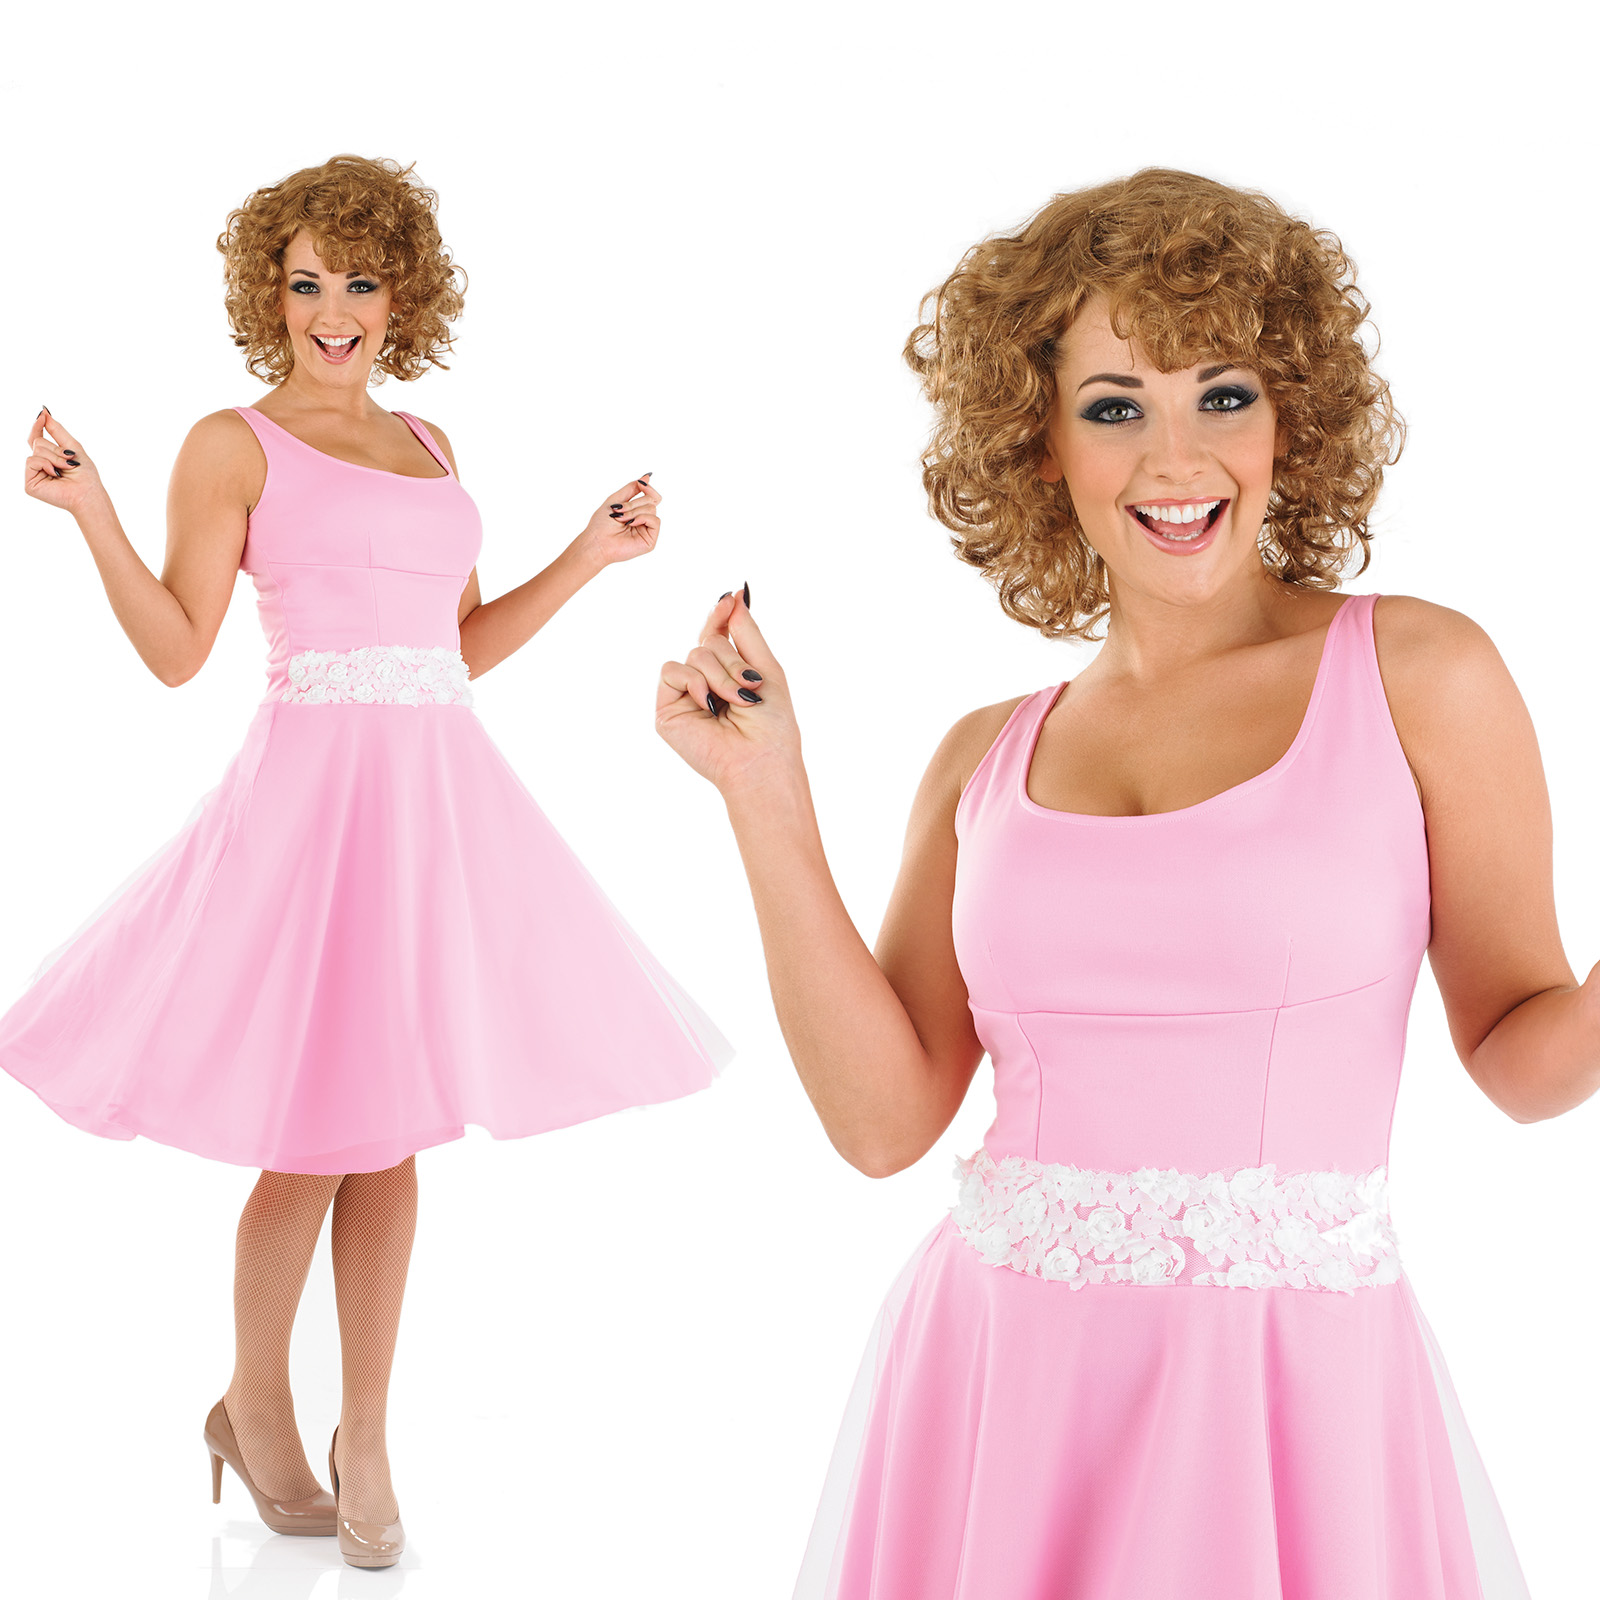 La s Pink Baby Fancy Dress Costume Dirty Dancing 80S Outfit UK 8